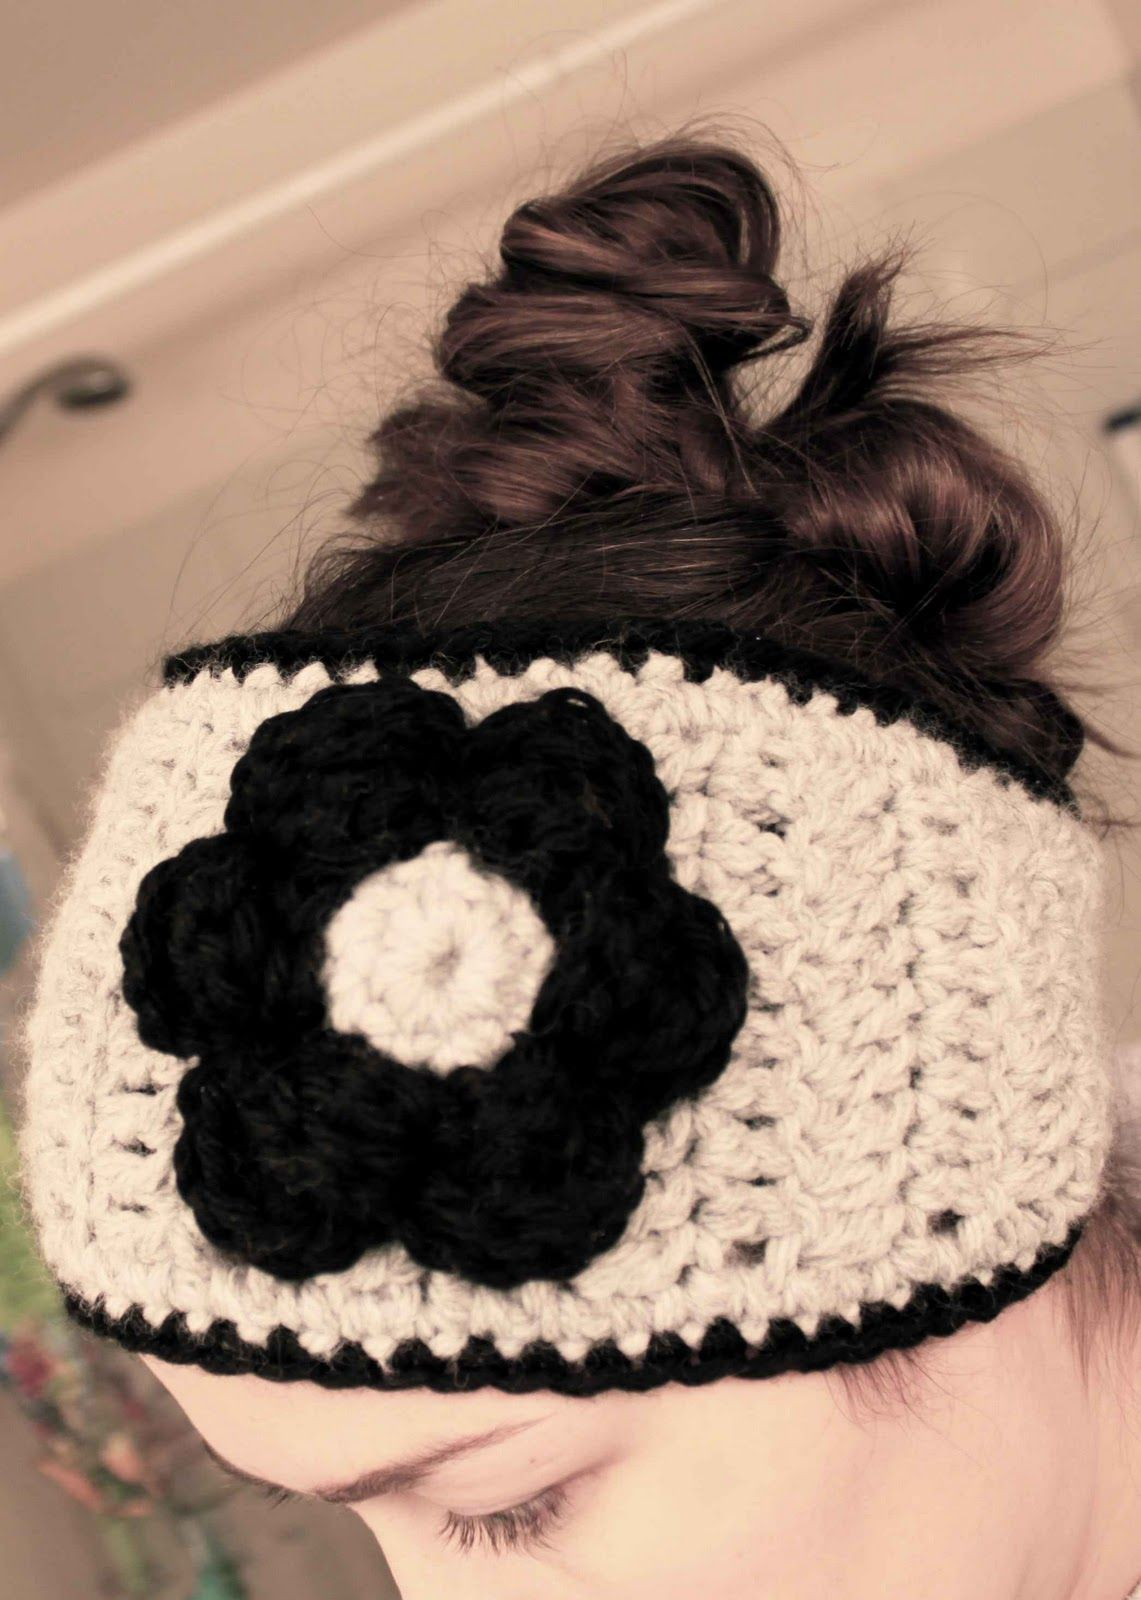 making a good life...one day at a time: MIY monday- crochet headband ...